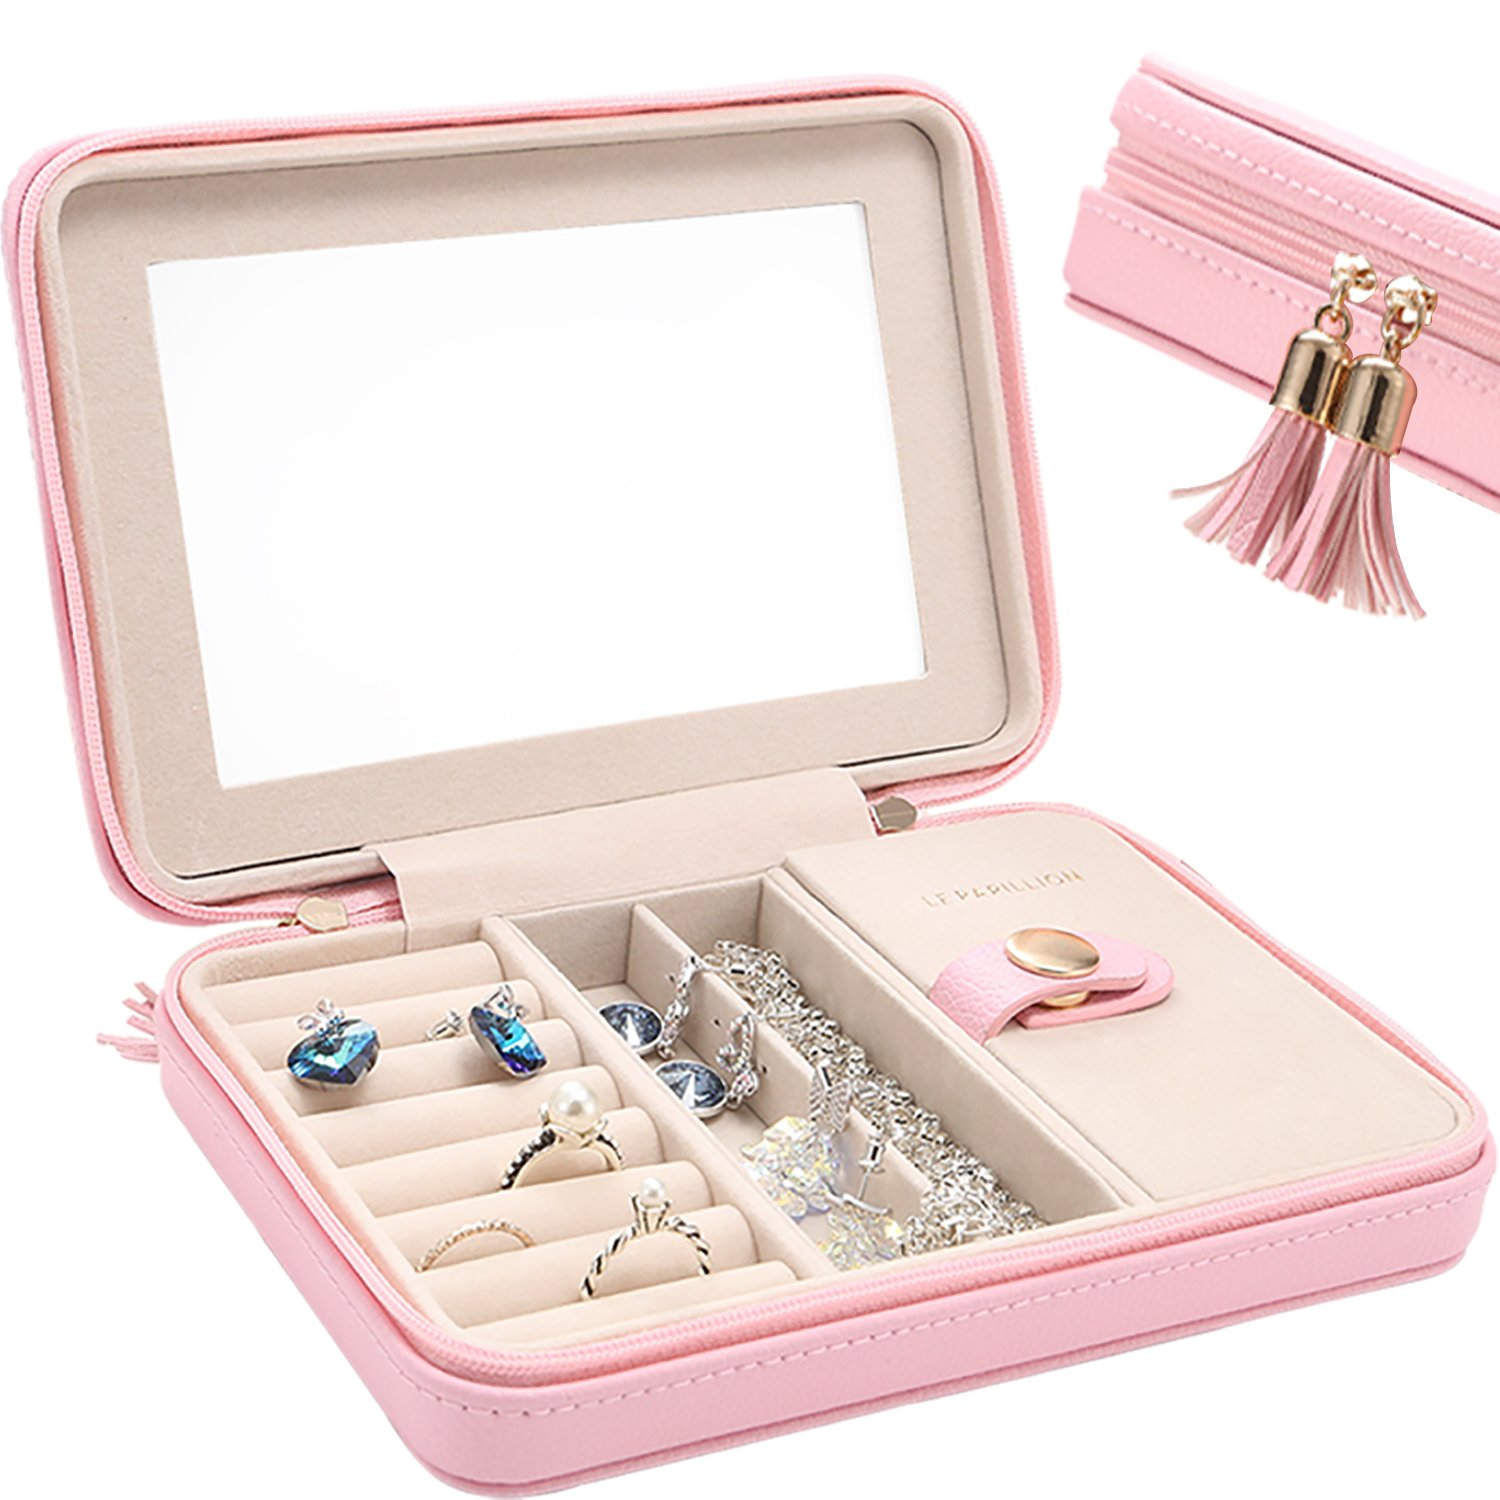 LE Papillion Small Jewelry Box Travel Jewelry Box Jewelry Travel Case Jewelry Organizer with Large Mirror, Gifts for Women, Great Gift Idea(Pink)